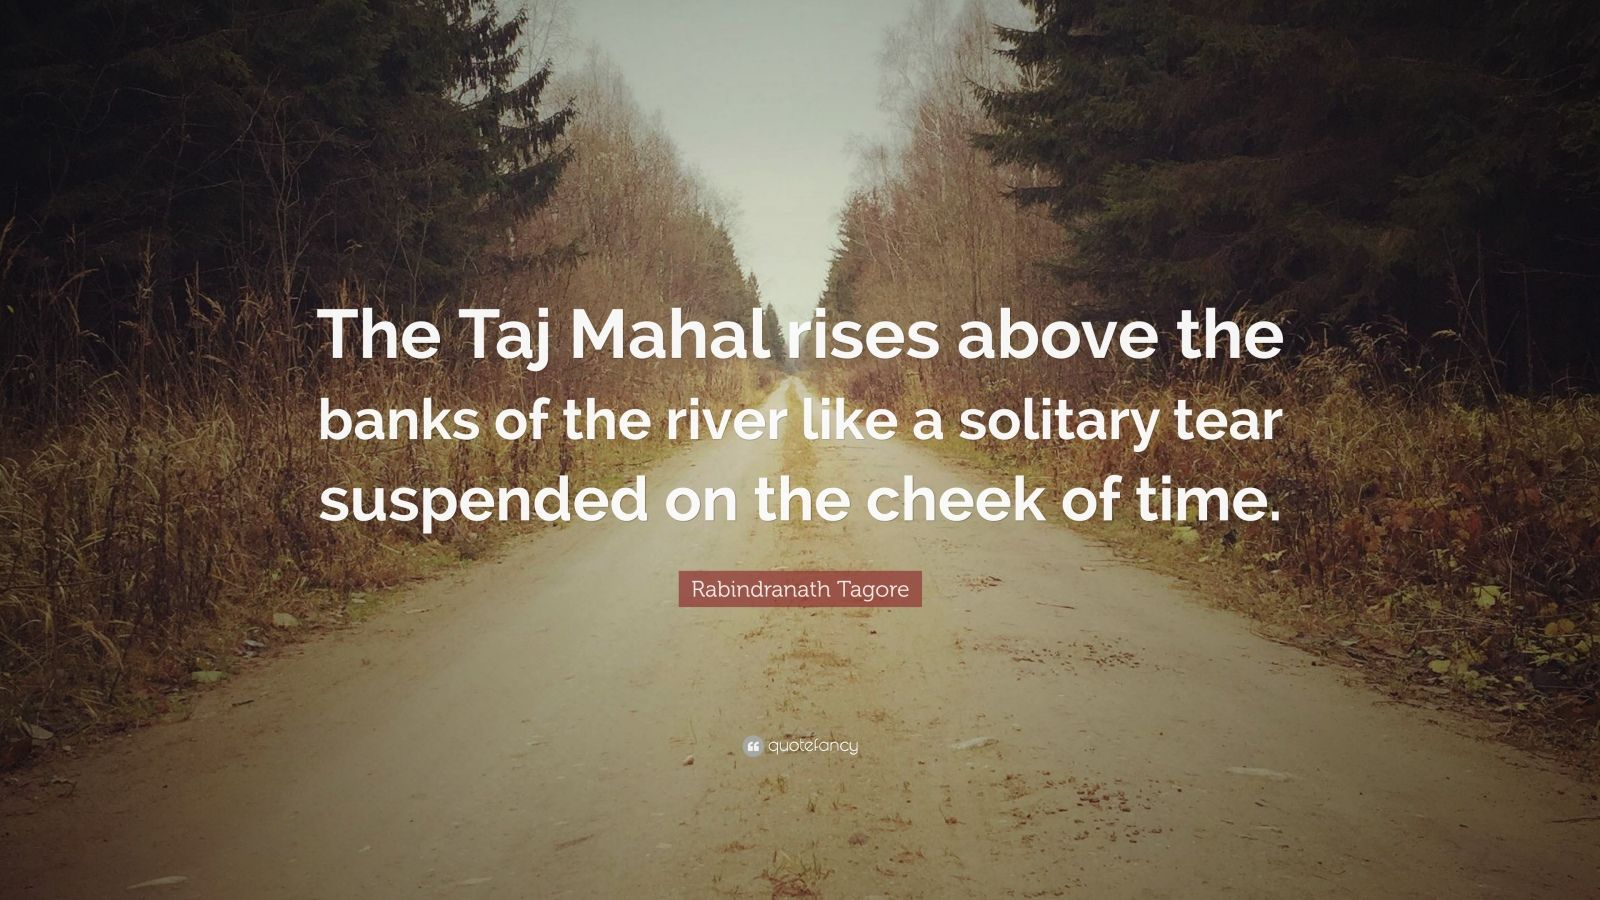 """Rabindranath Tagore Quote: """"The Taj Mahal rises above the banks of the river like a solitary tear suspended on the cheek of time."""""""